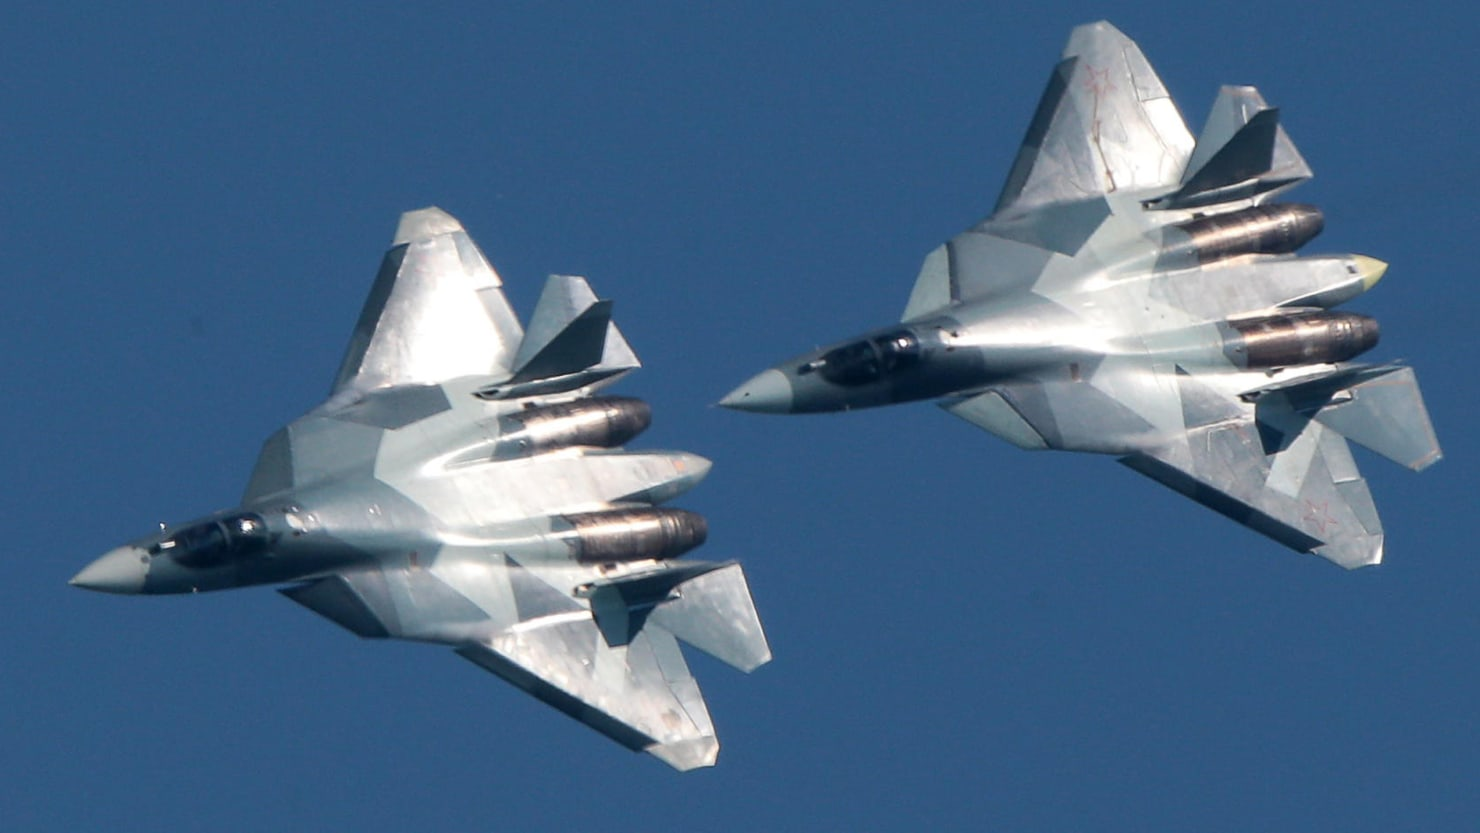 Syrian MiG-29 began to provide direct cover for Su-25 ground attack aircraft of the Russian space forces 63